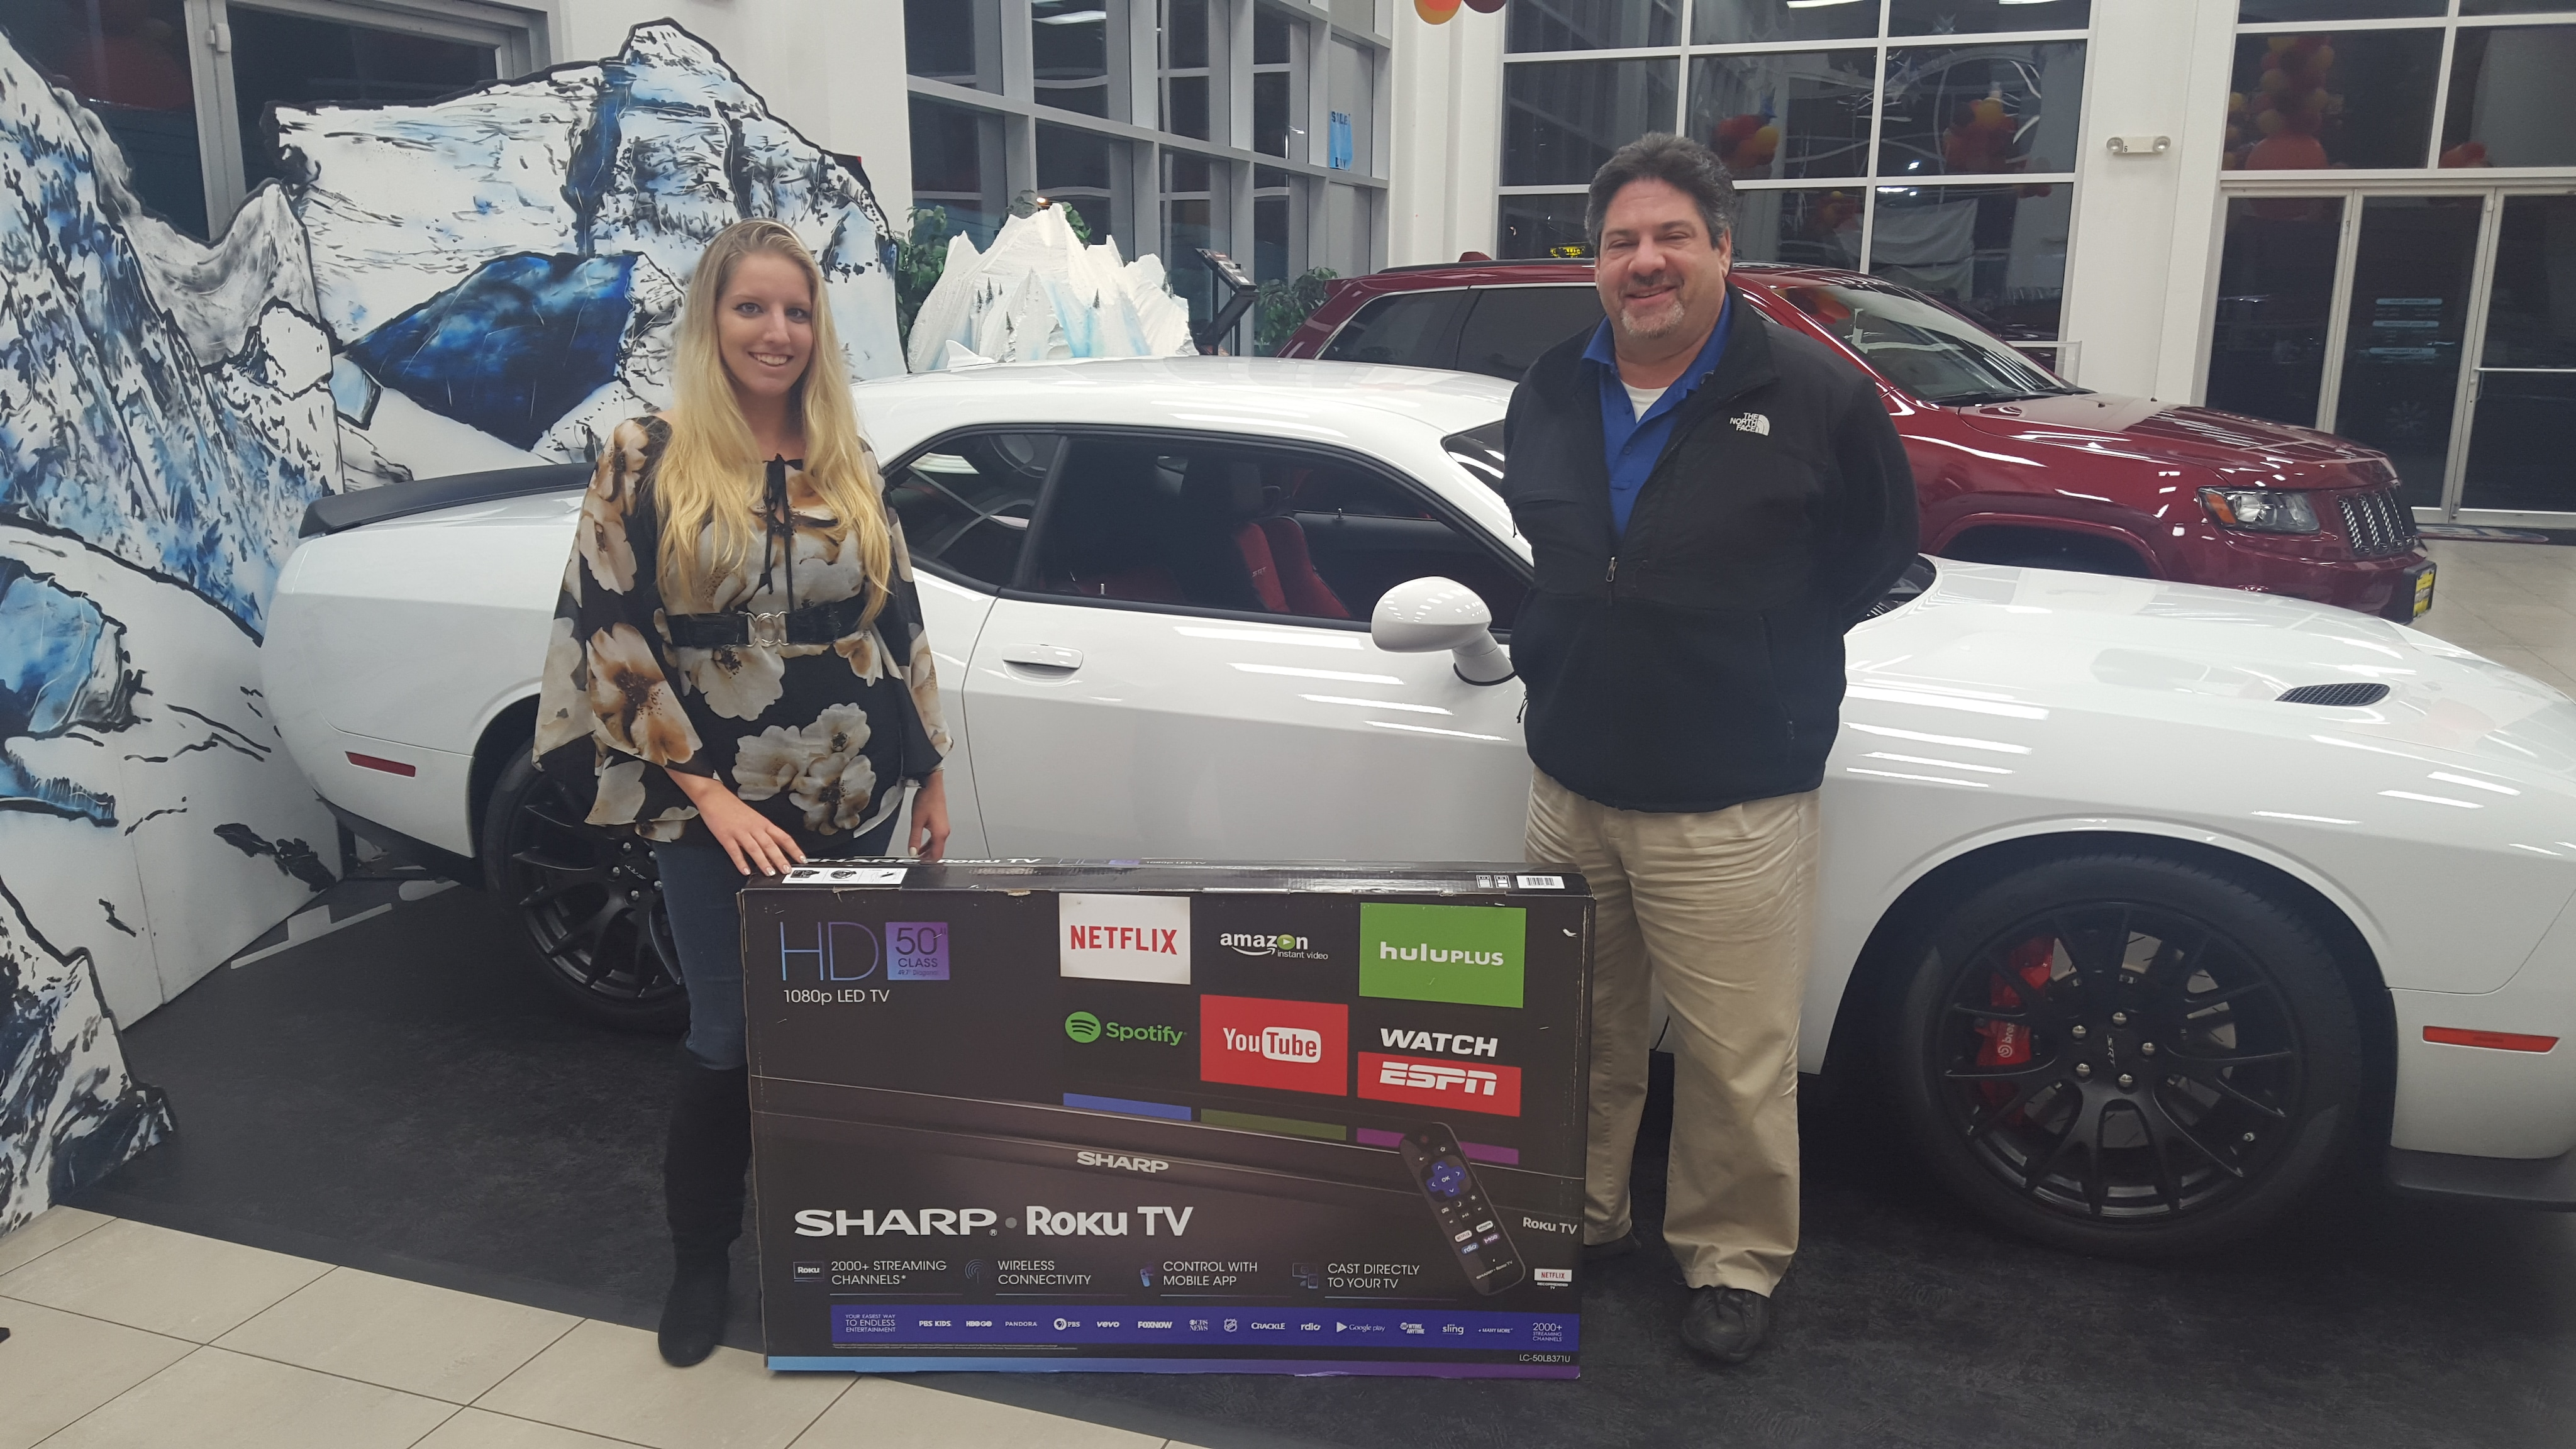 Sharp Roku HD TV Raffle Winners NJ